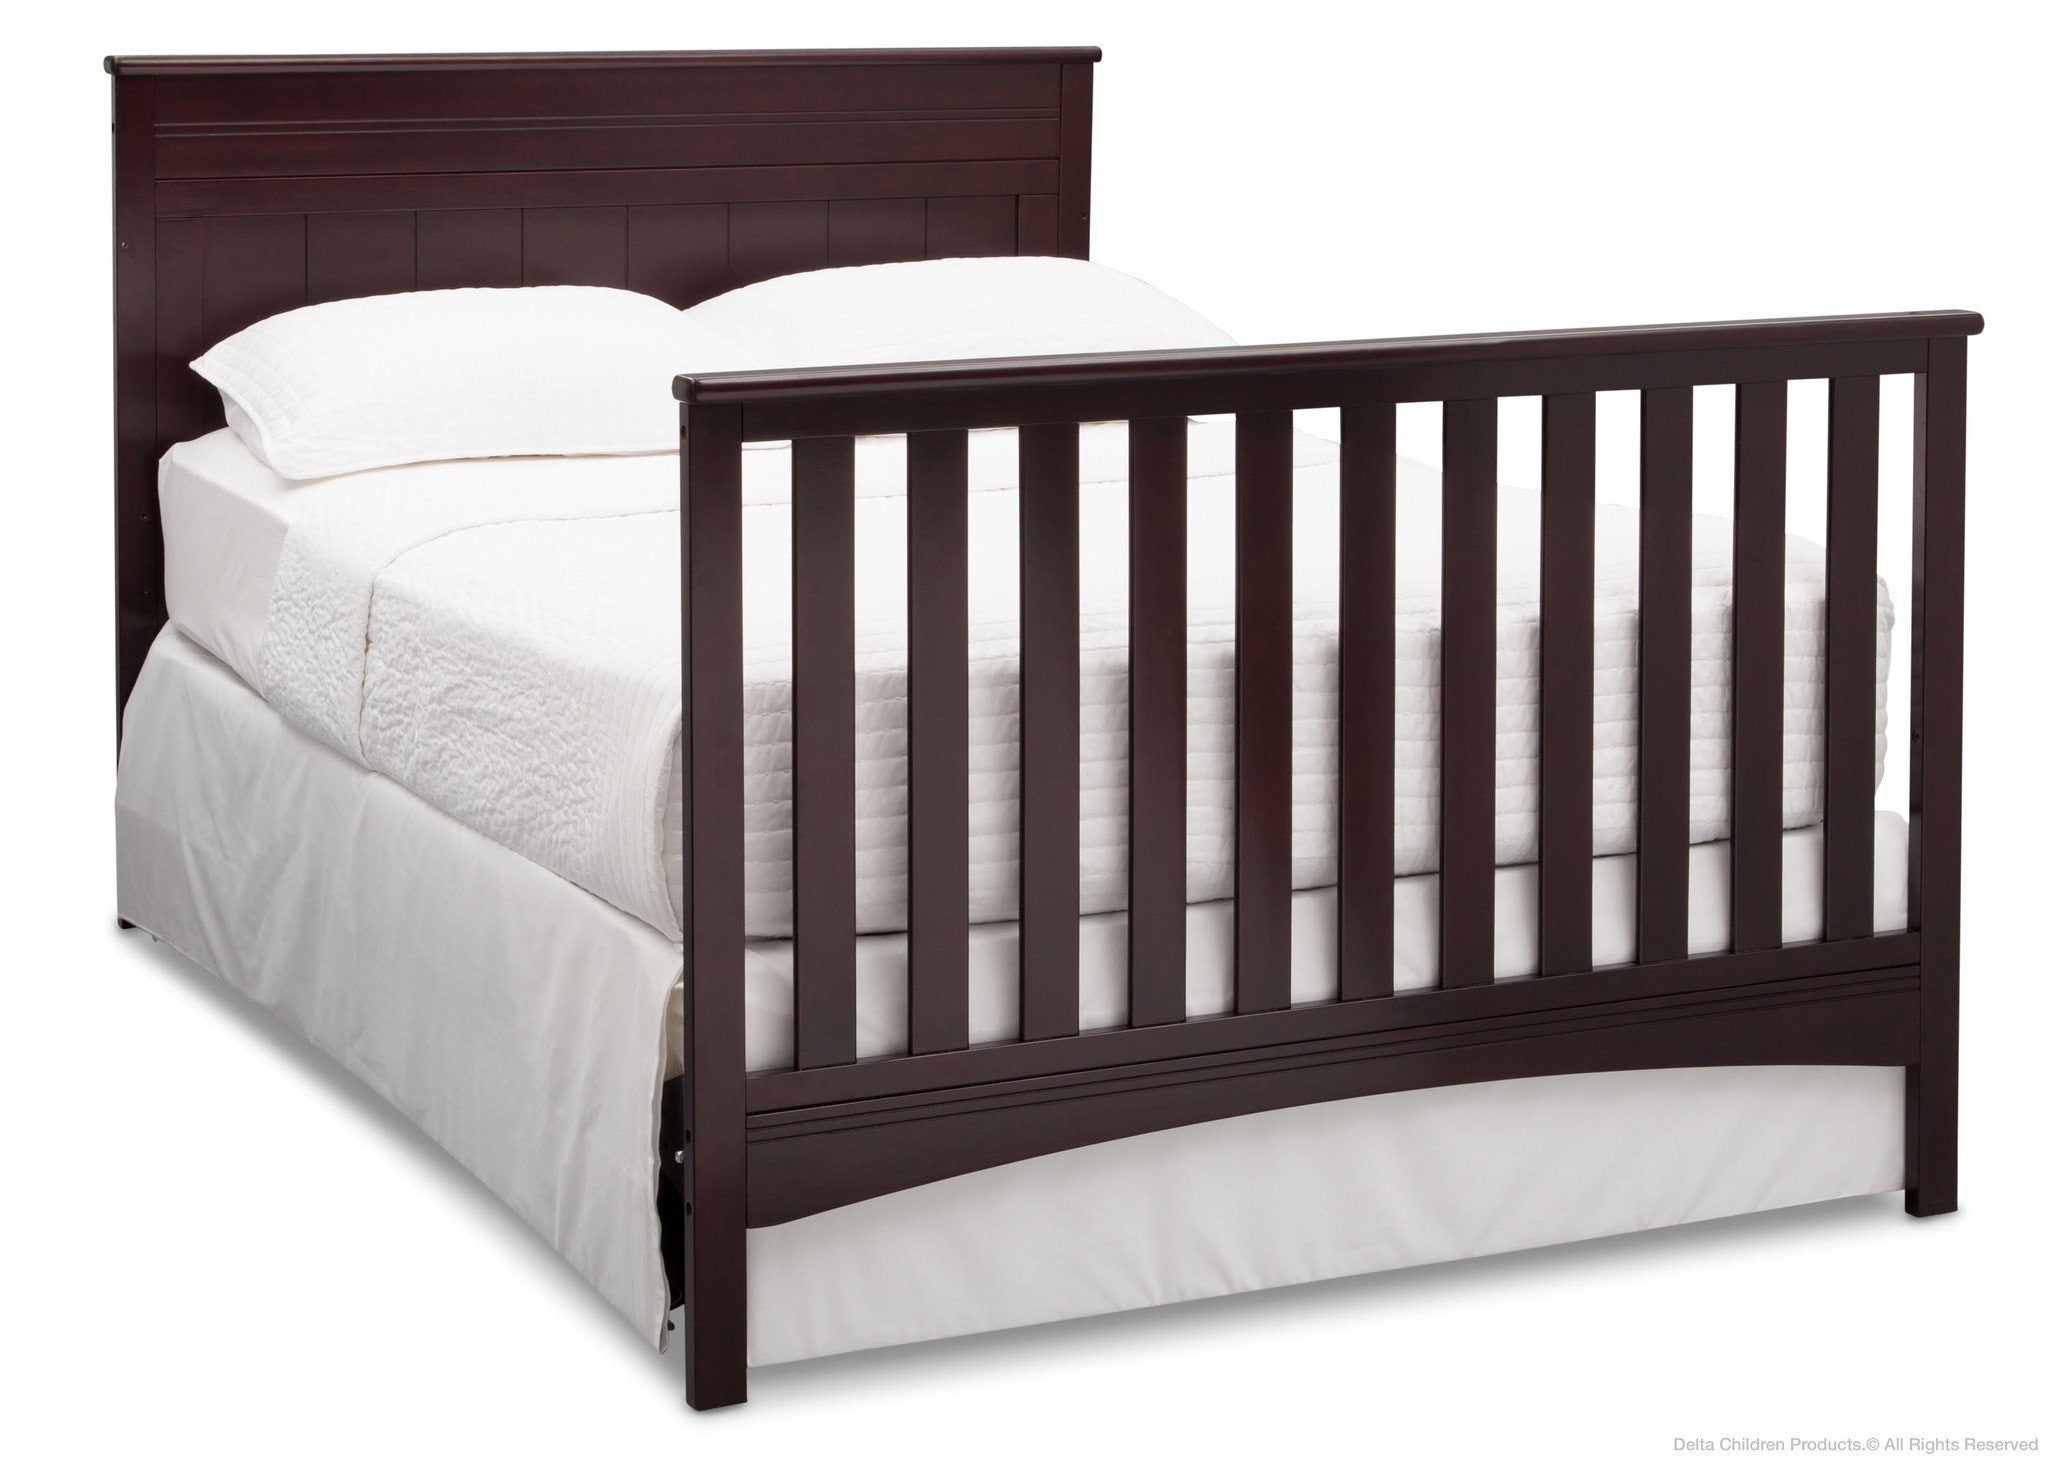 Delta Children Dark Chocolate (207) Fancy 4-in-1 Crib, Full-Size Bed Conversion c6c